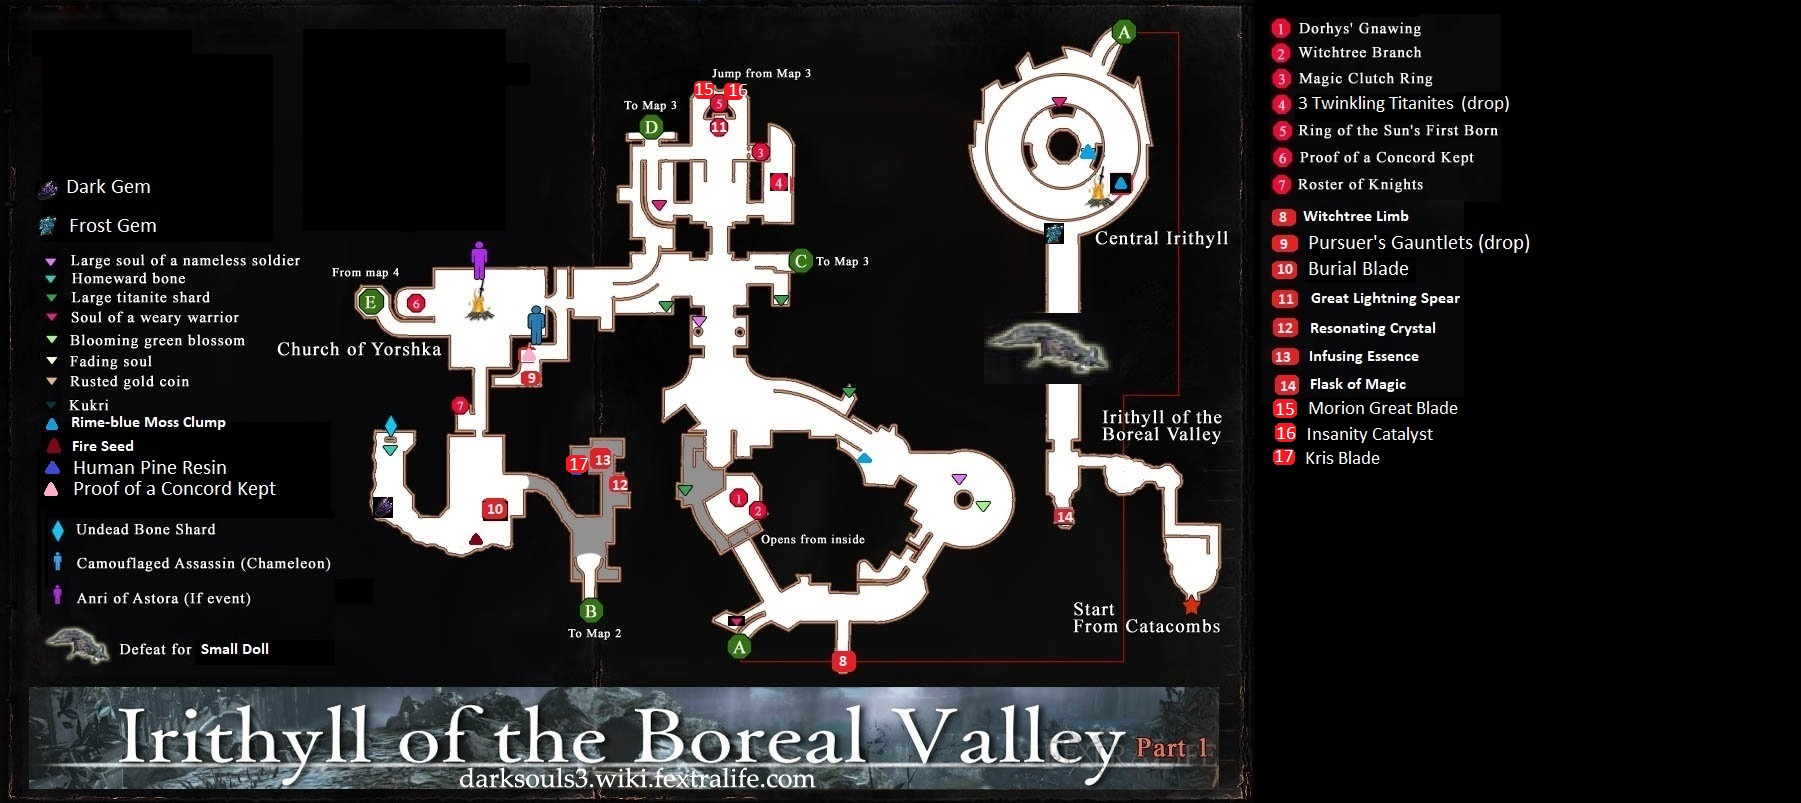 irithyll_of_the_boreal_valley_map1.jpg